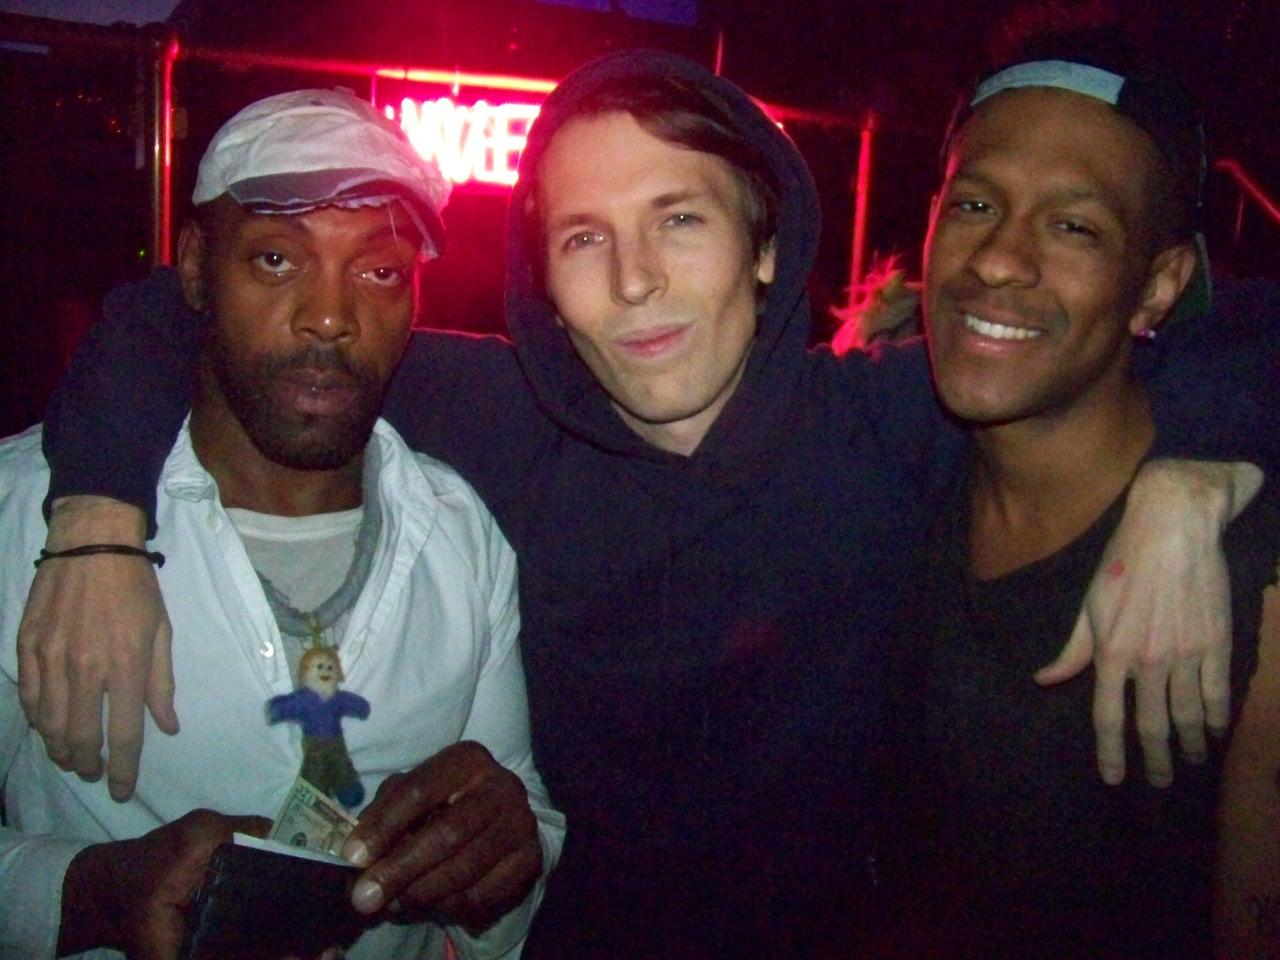 Andre Walker, Ryan McGinley and Mykki Blanco, photo © Quentin Belt